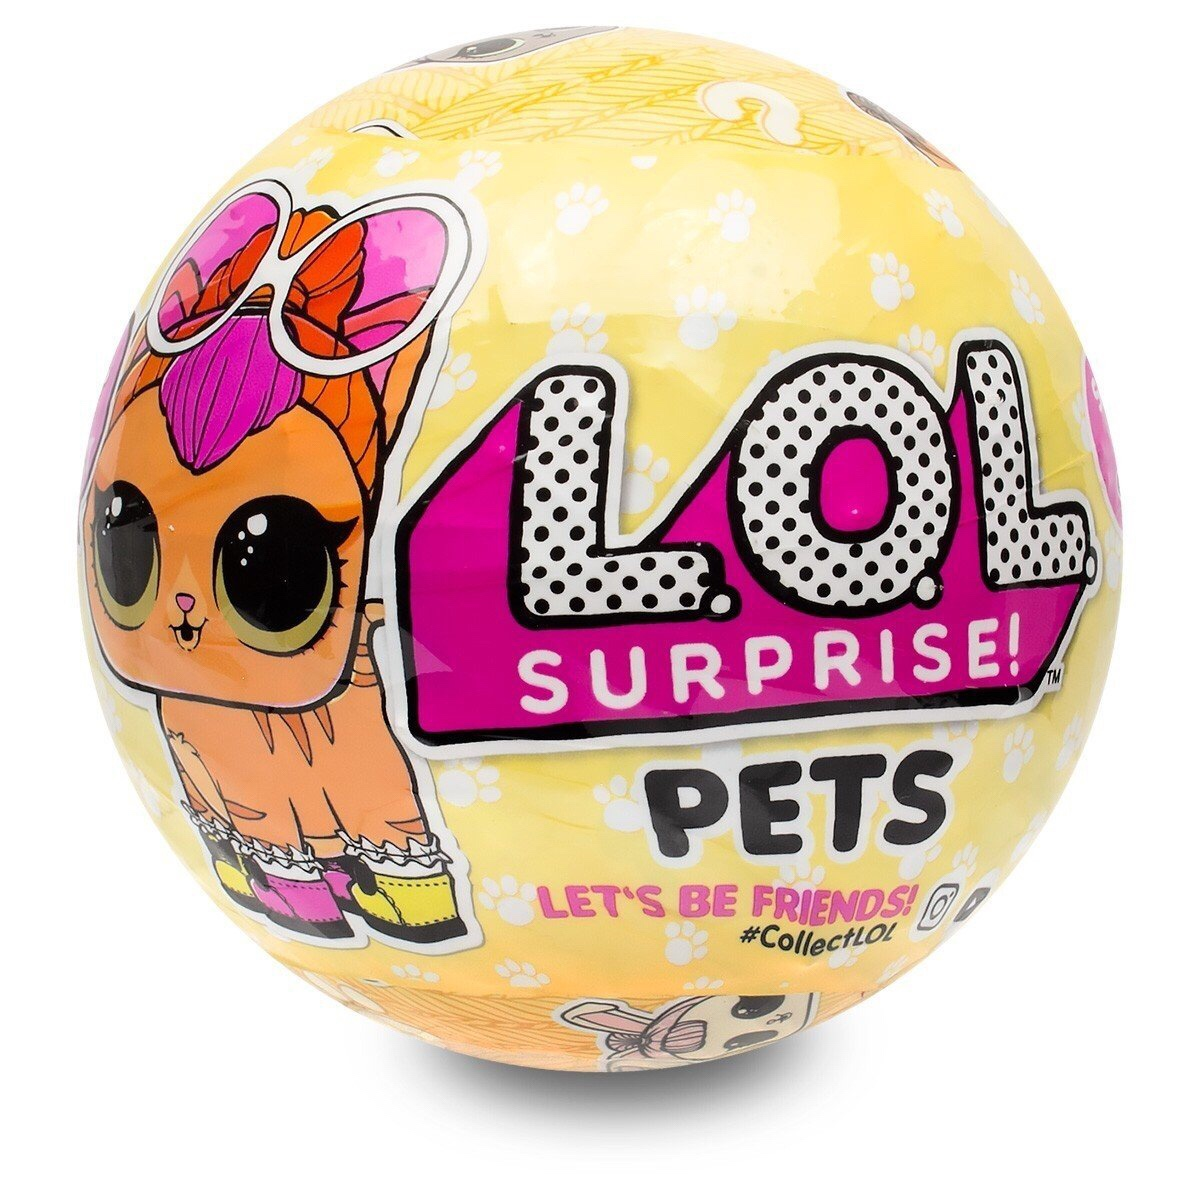 Smiles, Sand and Surprises with LOL Surprise Pets